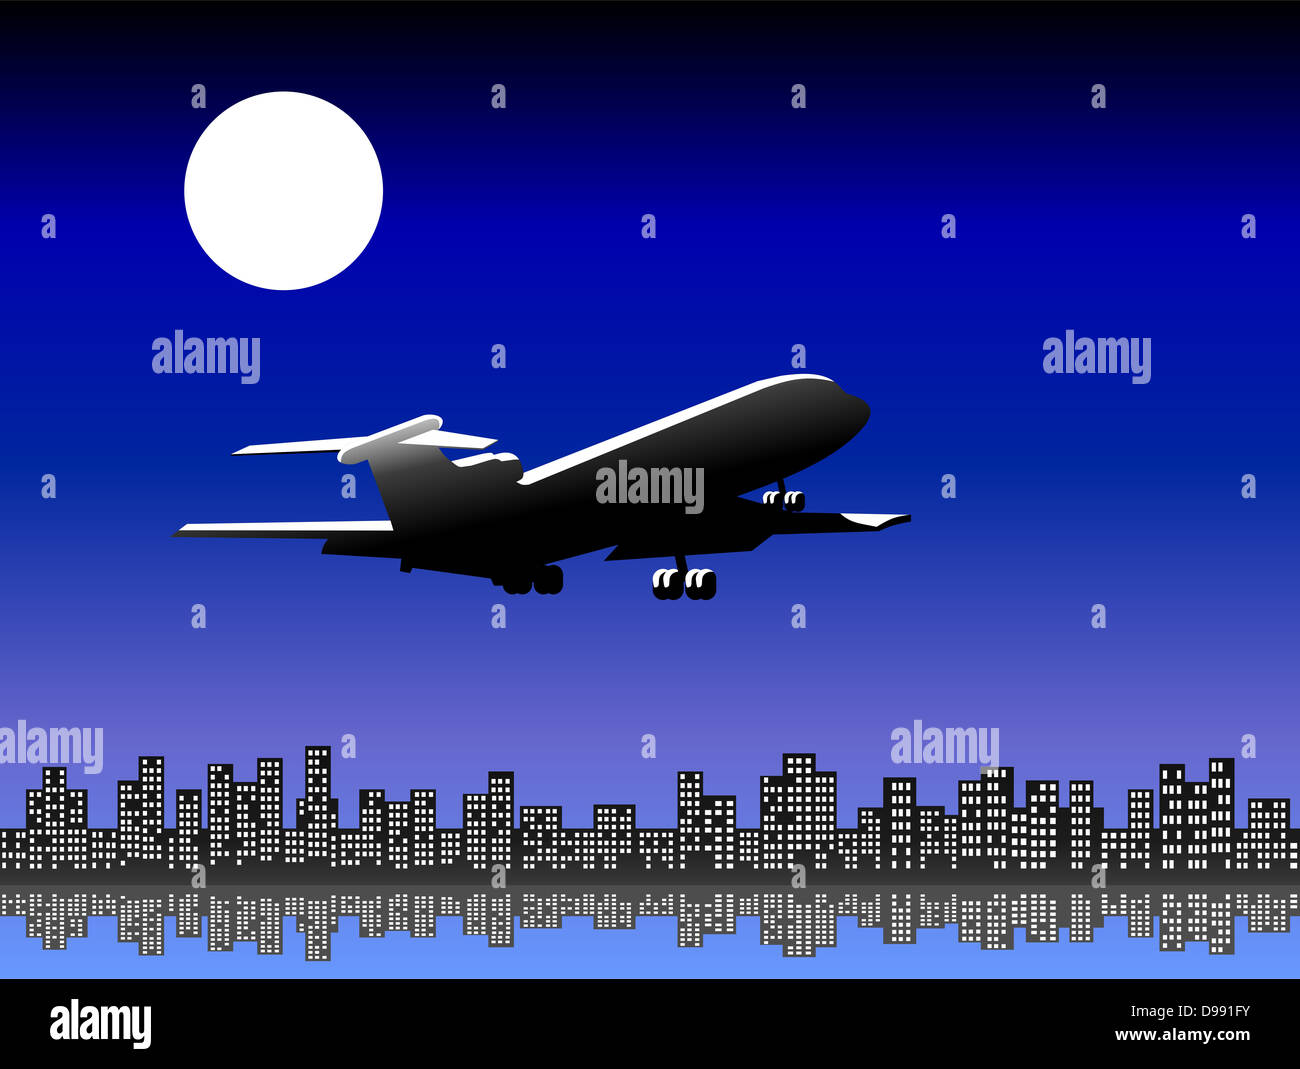 Airplane flying over the city at night, illuminated by the light of the full moon. - Stock Image